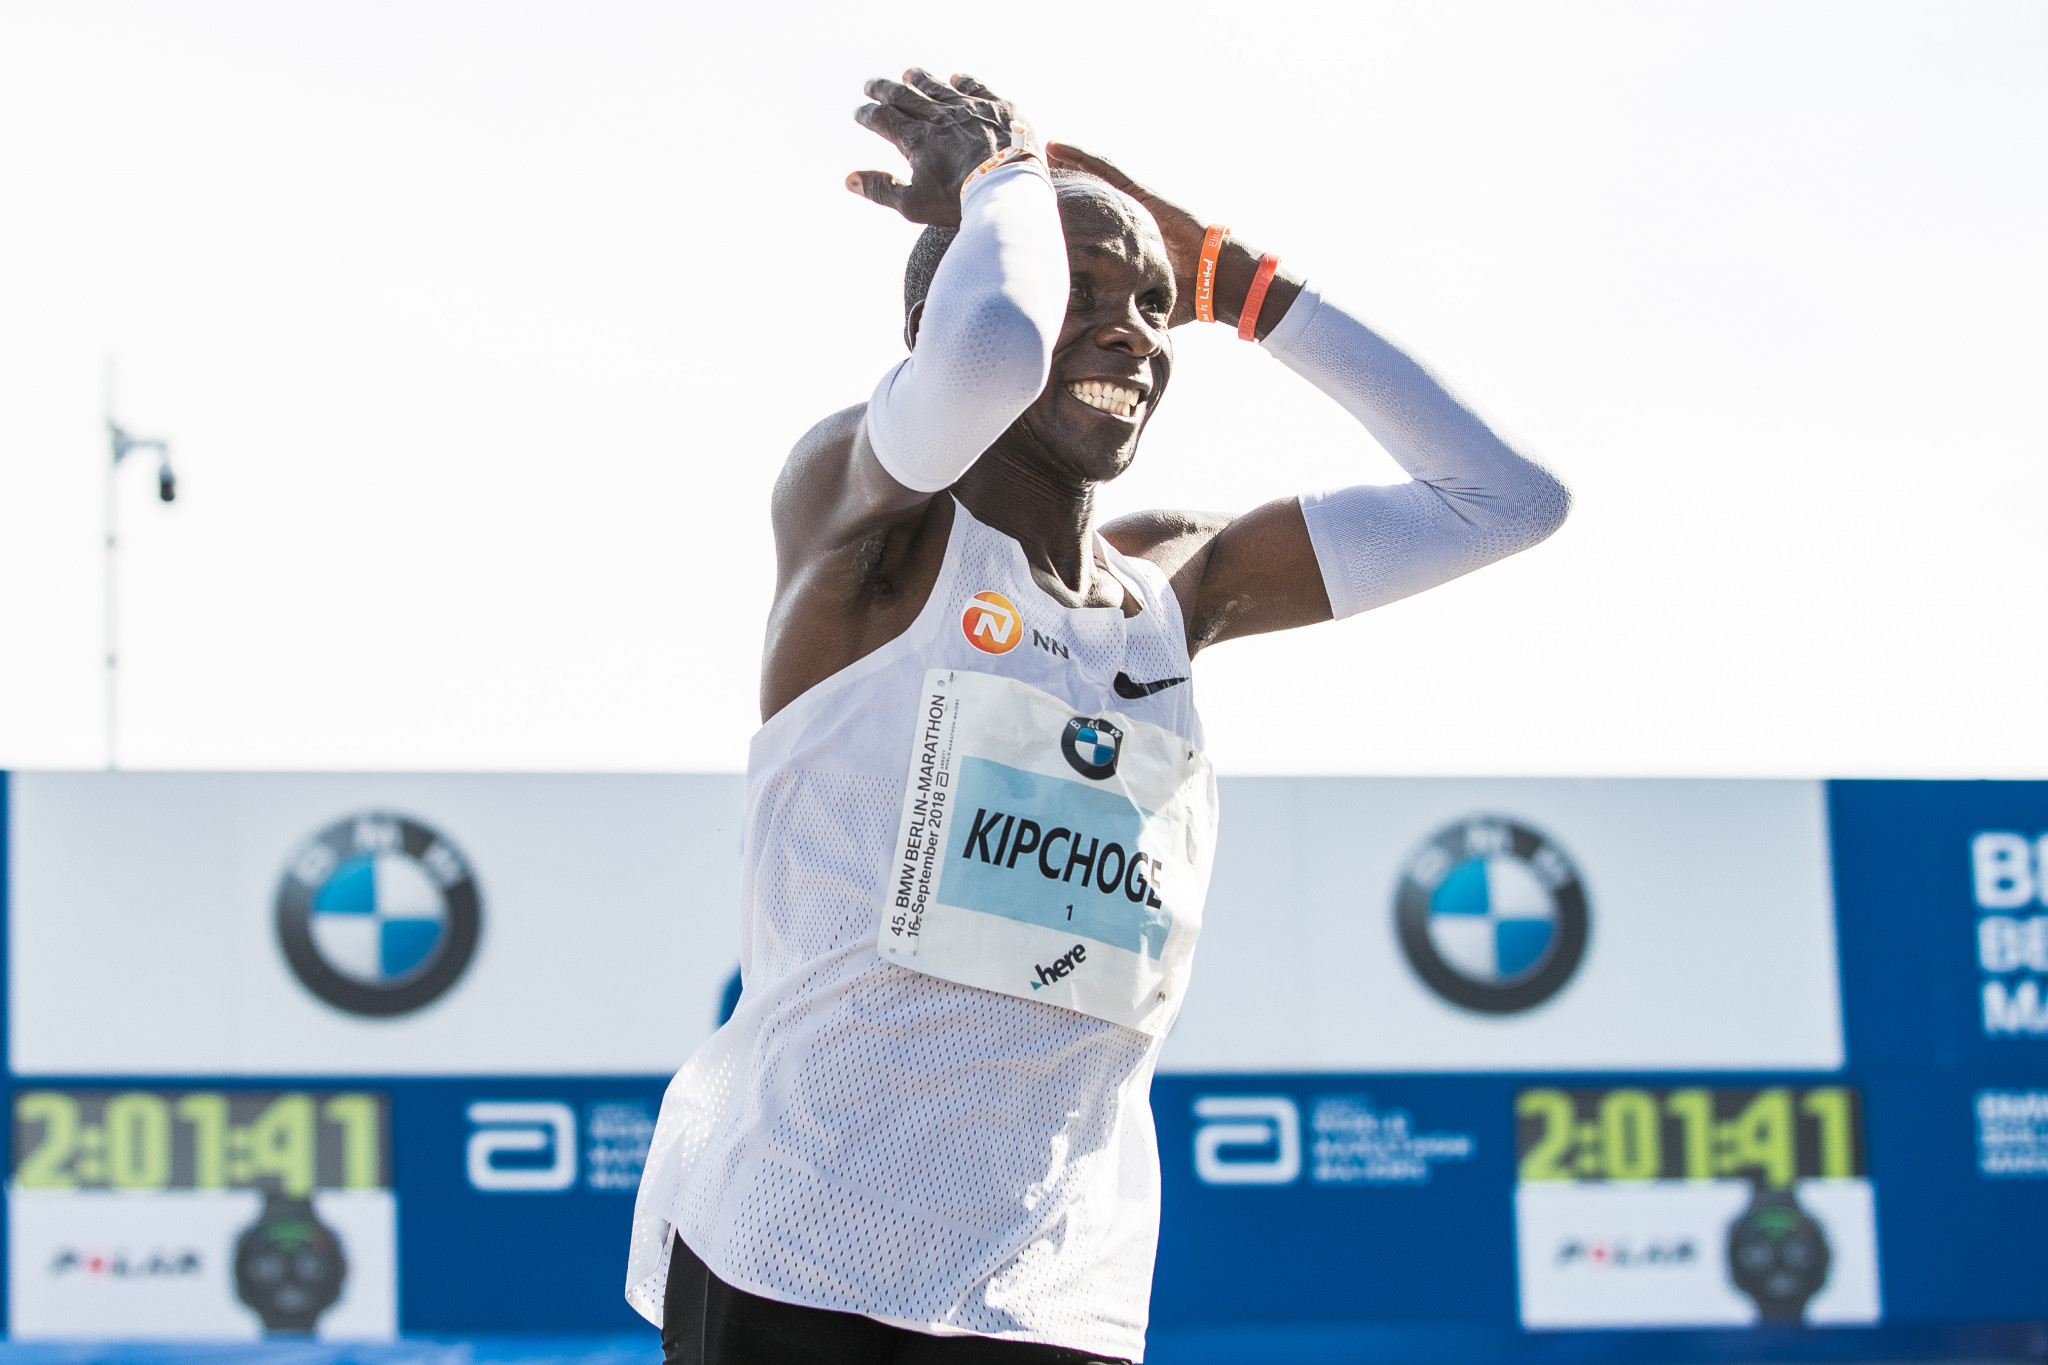 Kenya's Eliud Kipchoge celebrates after taking 1min 18sec off the world marathon record in Berlin today ©Getty Images